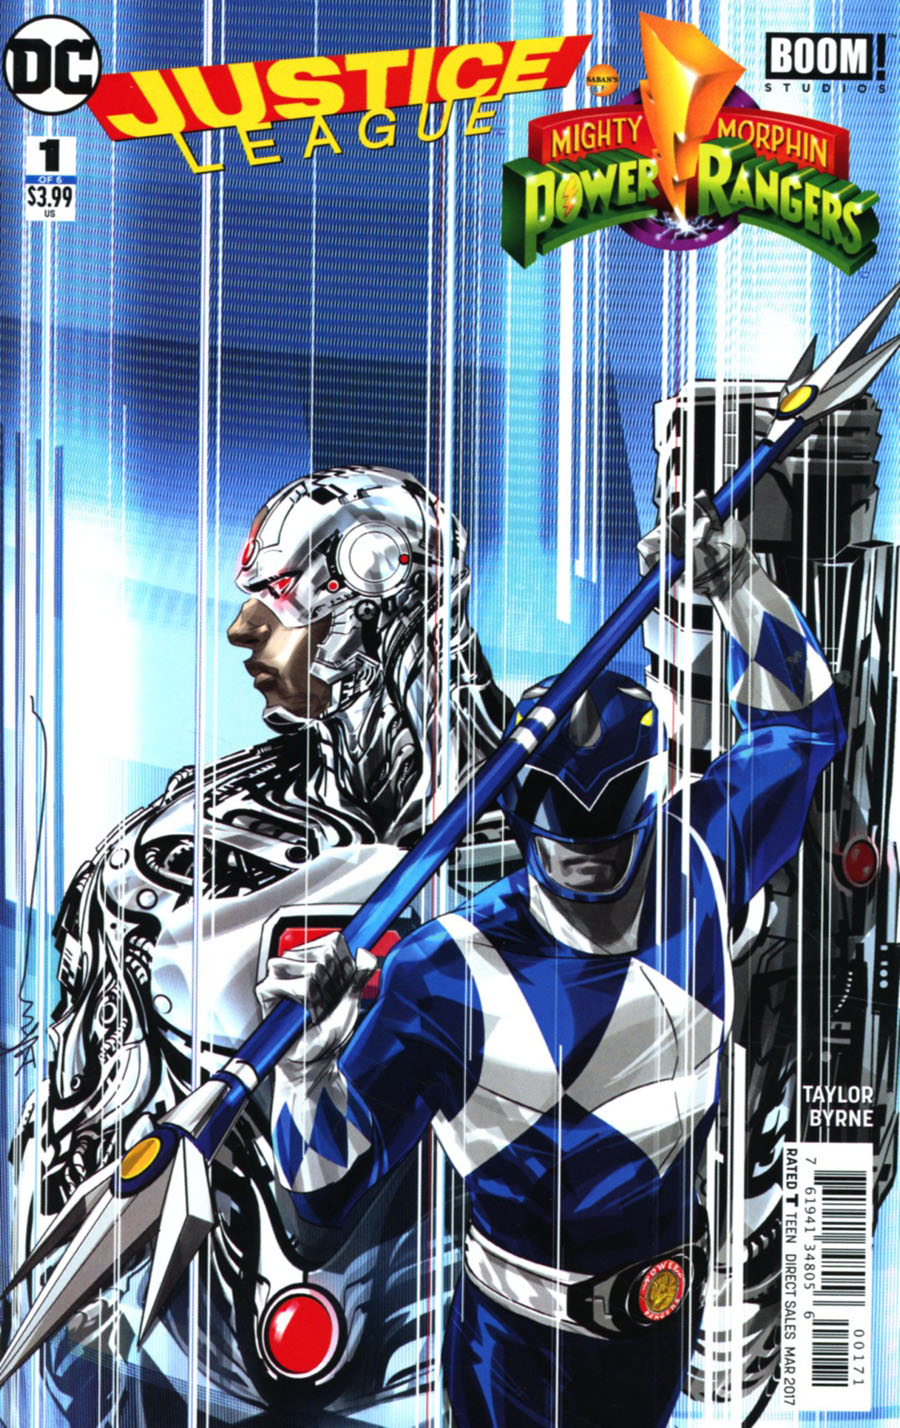 Justice League Power Rangers #1 Cover C Variant Dustin Nguyen Cyborg Blue Ranger Cover